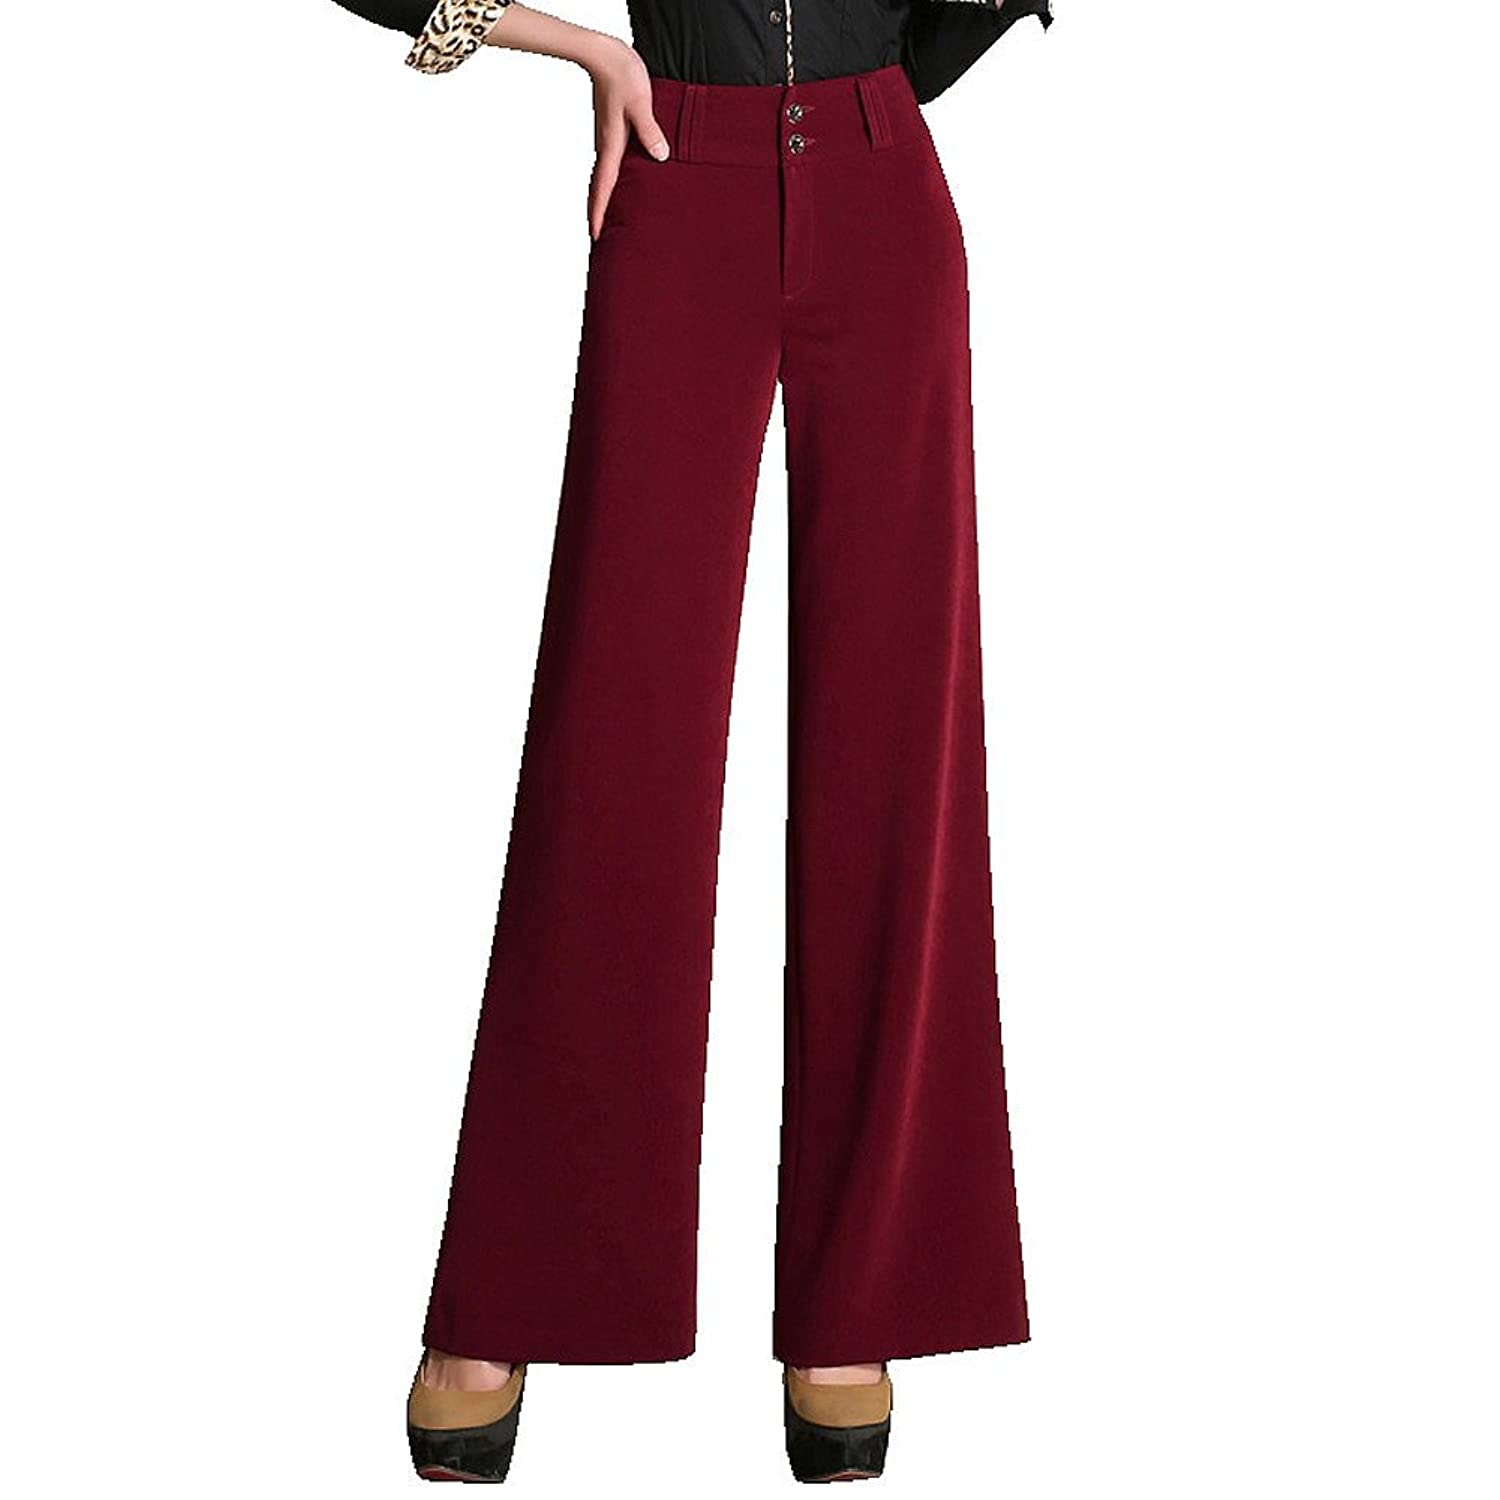 Women's High Waist Wide Leg Trousers 2 Buttons Dress Pants 5 Colors Size 27-35